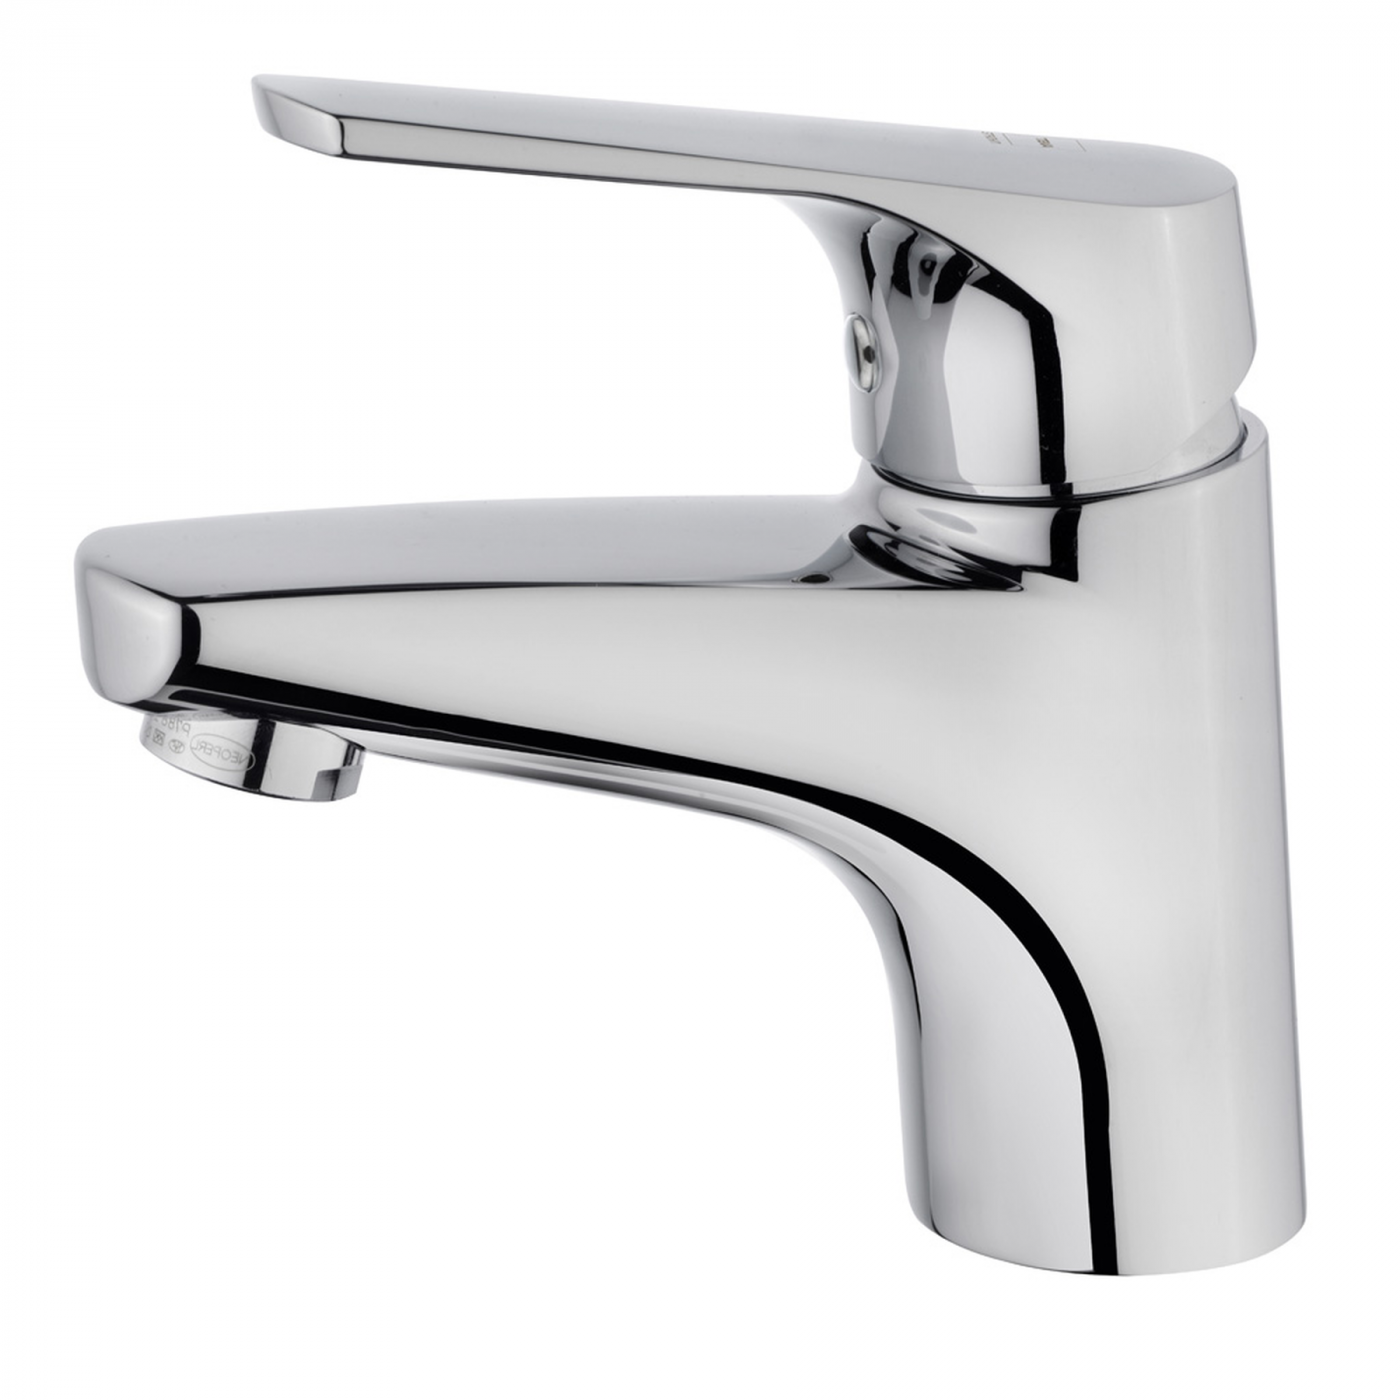 MT Plus washbasin mixer no pop-up waste